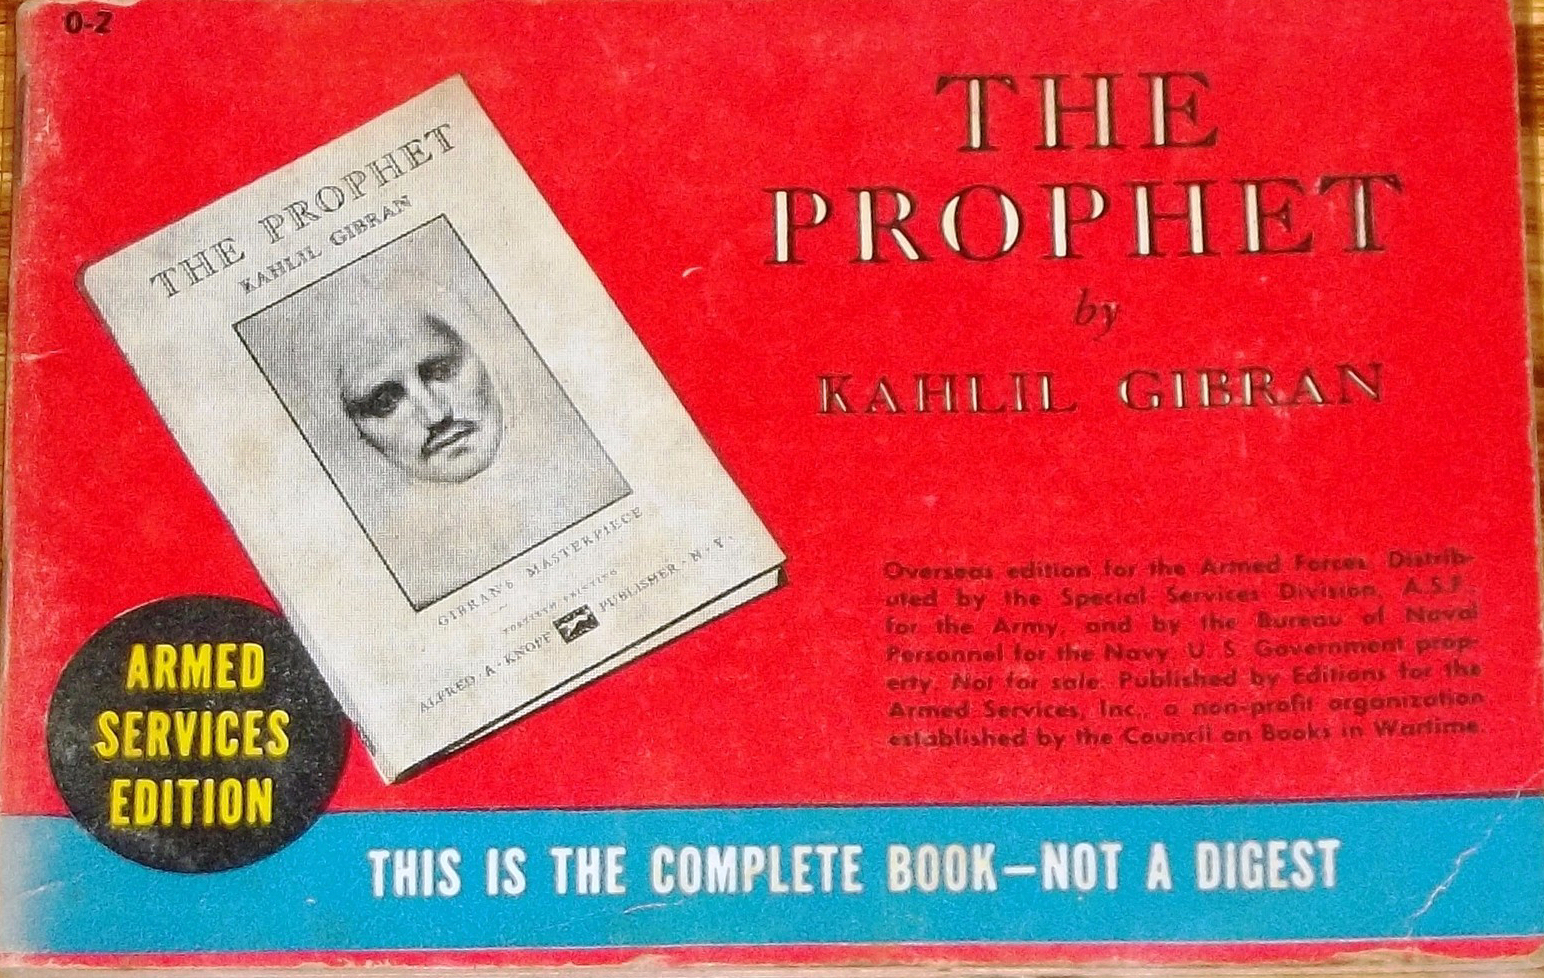 Armed Services Edition The Prophet Council of Books in Wartime 1943-47